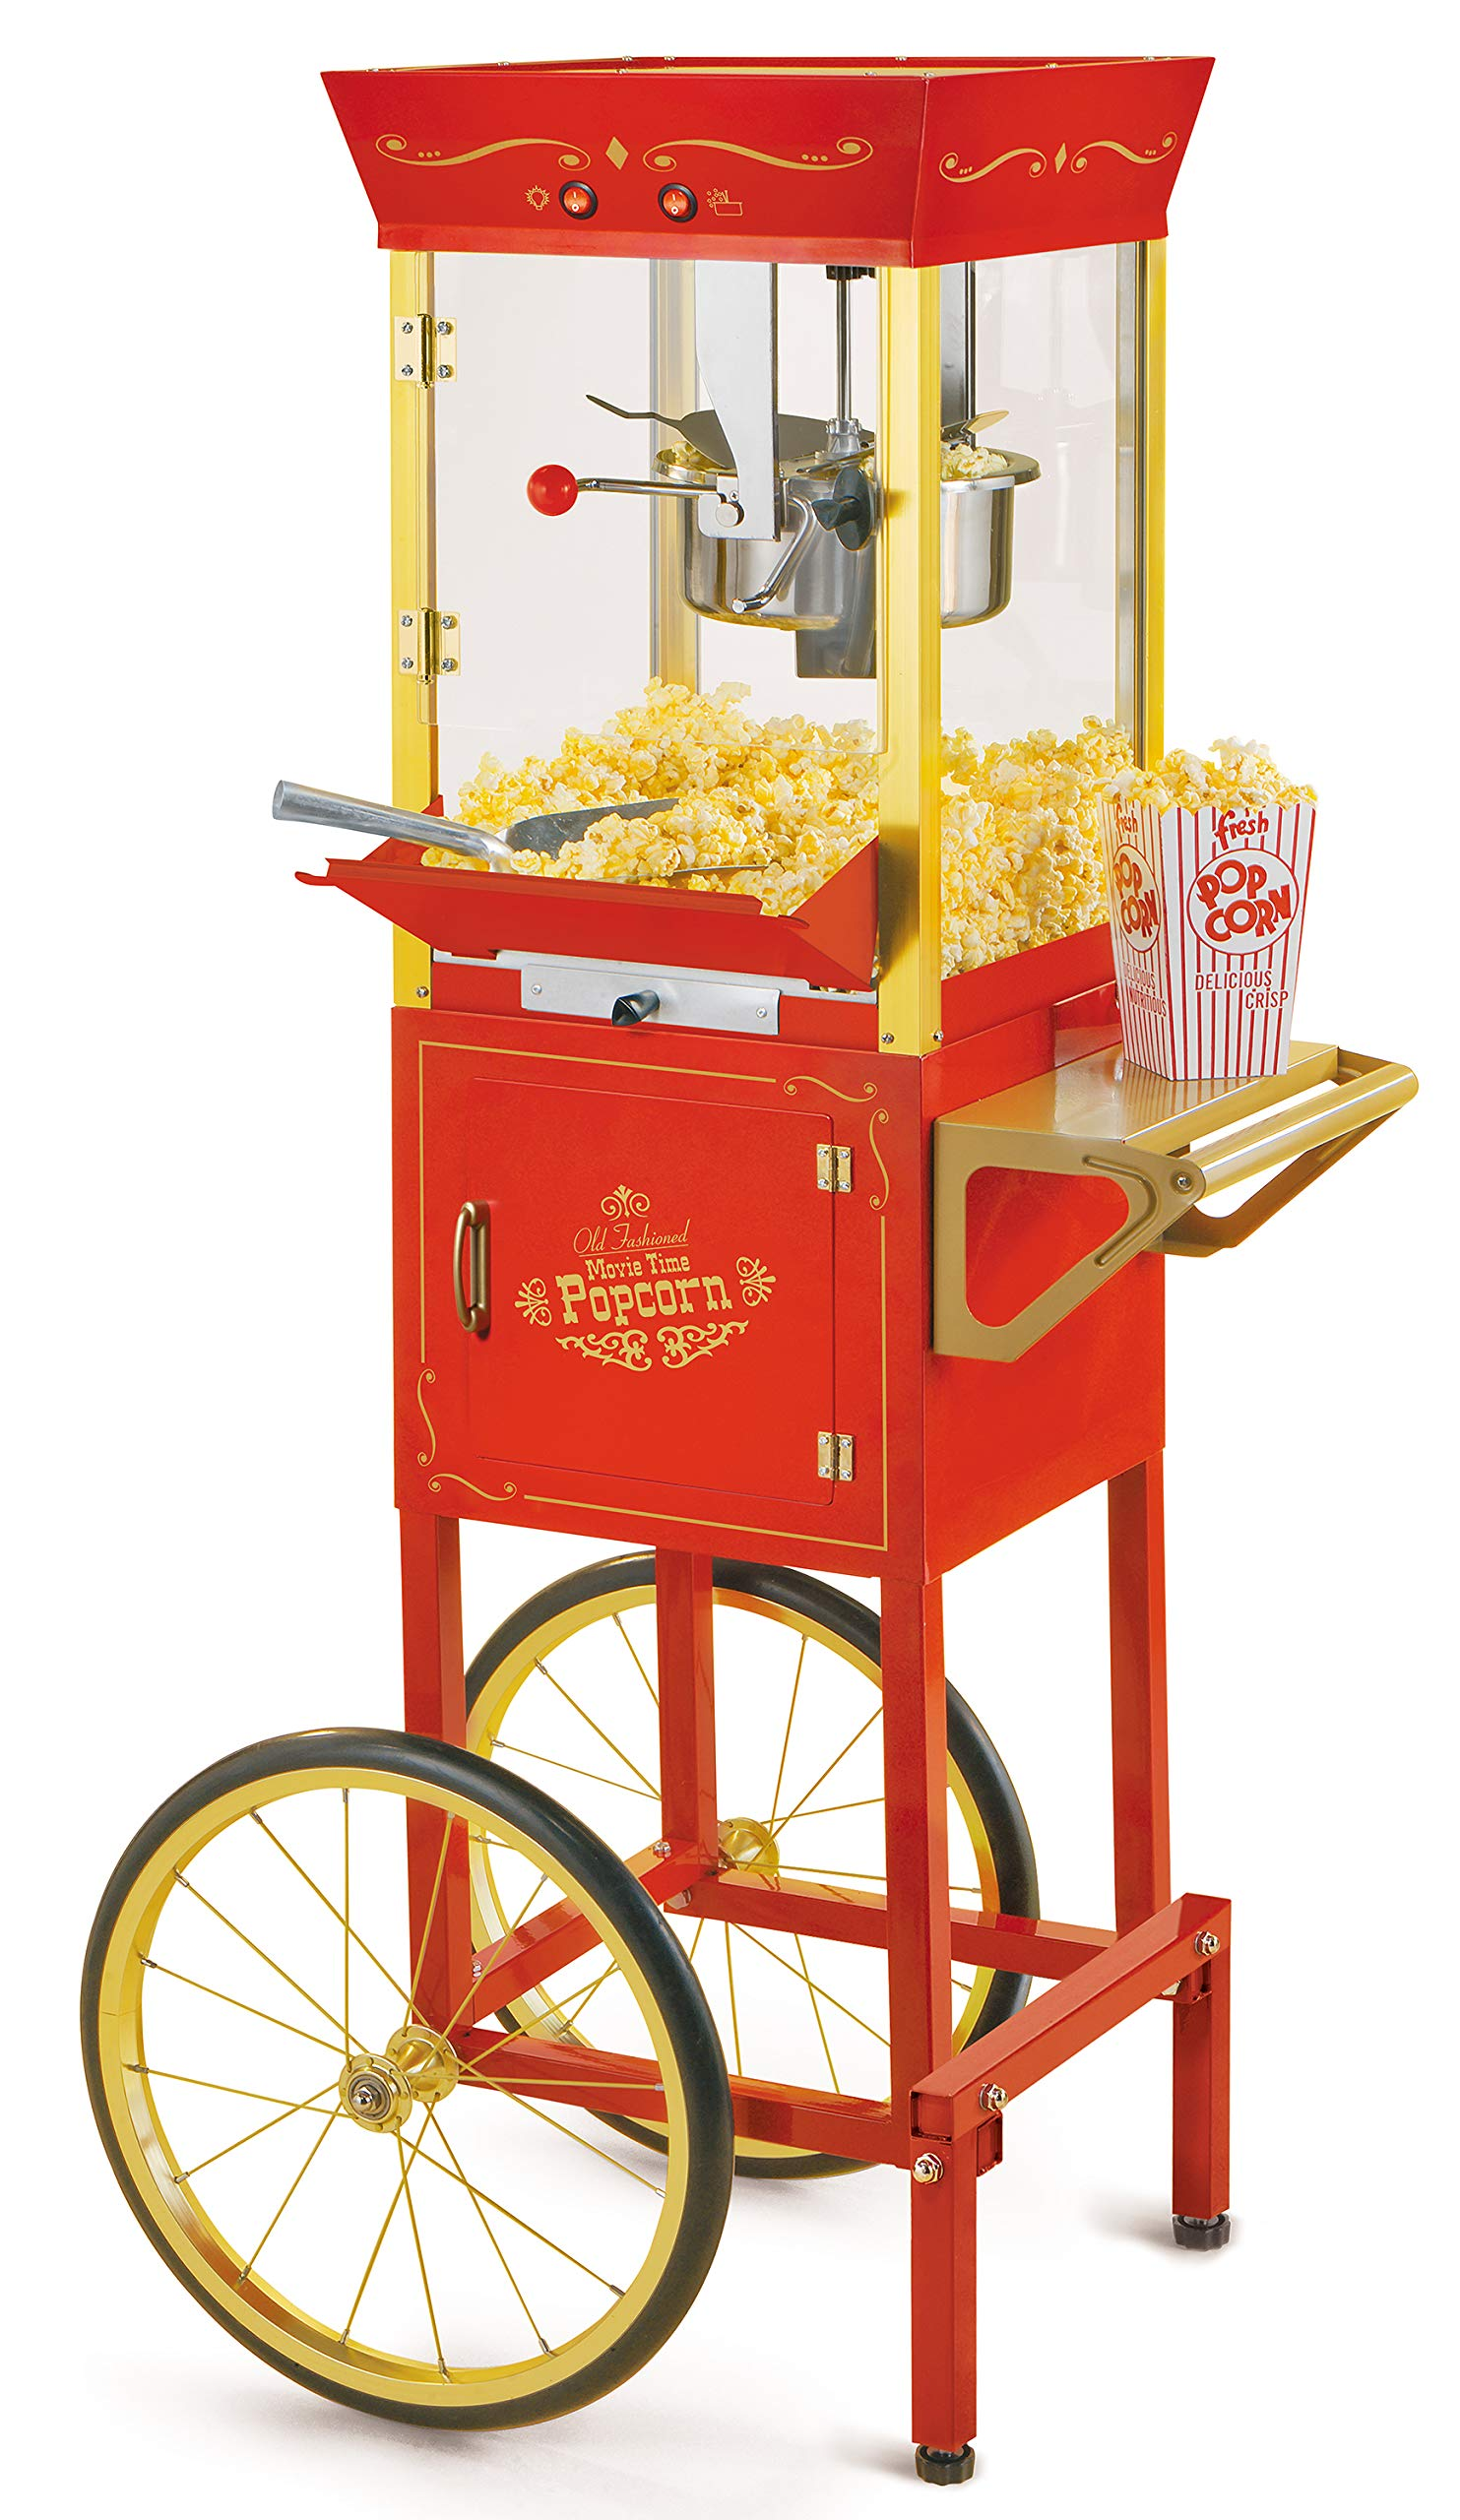 Nostalgia Concession CCP510 Vintage Professional Popcorn Cart-New 8-Ounce Kettle-53 Inches Tall-Red by NOSTALGIA